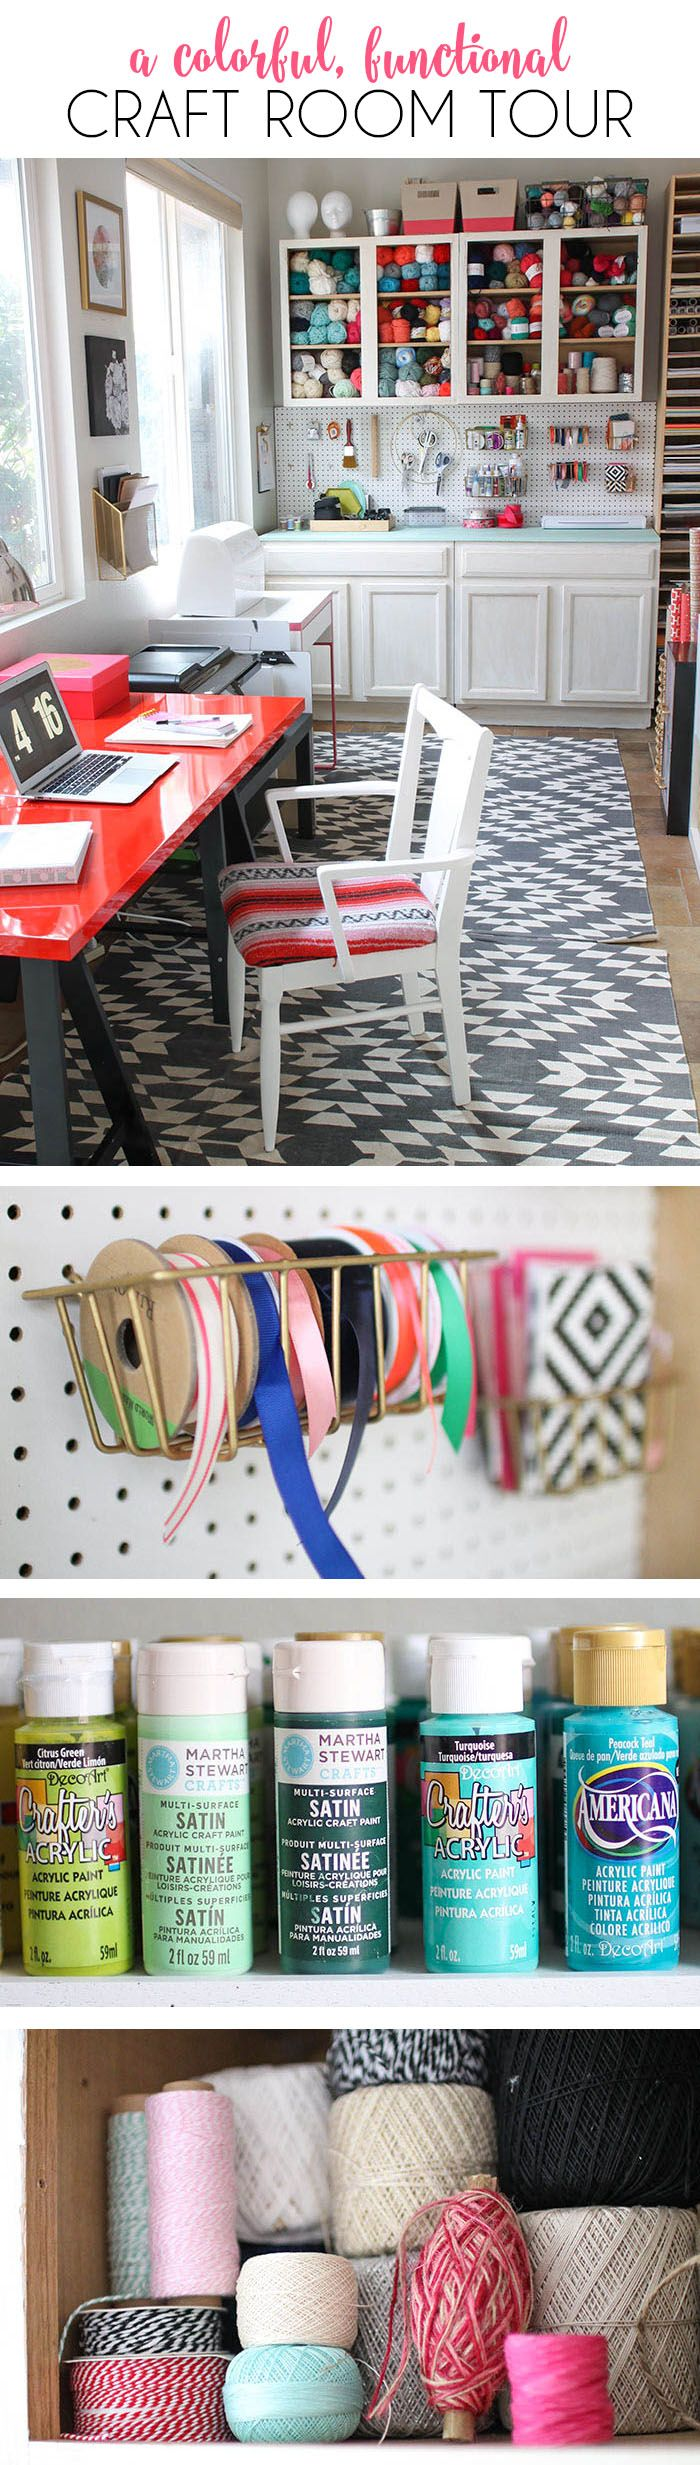 Scrapbook organization ideas - A Colorful And Functional Craft Room Lots Of Fun Storage Ideas